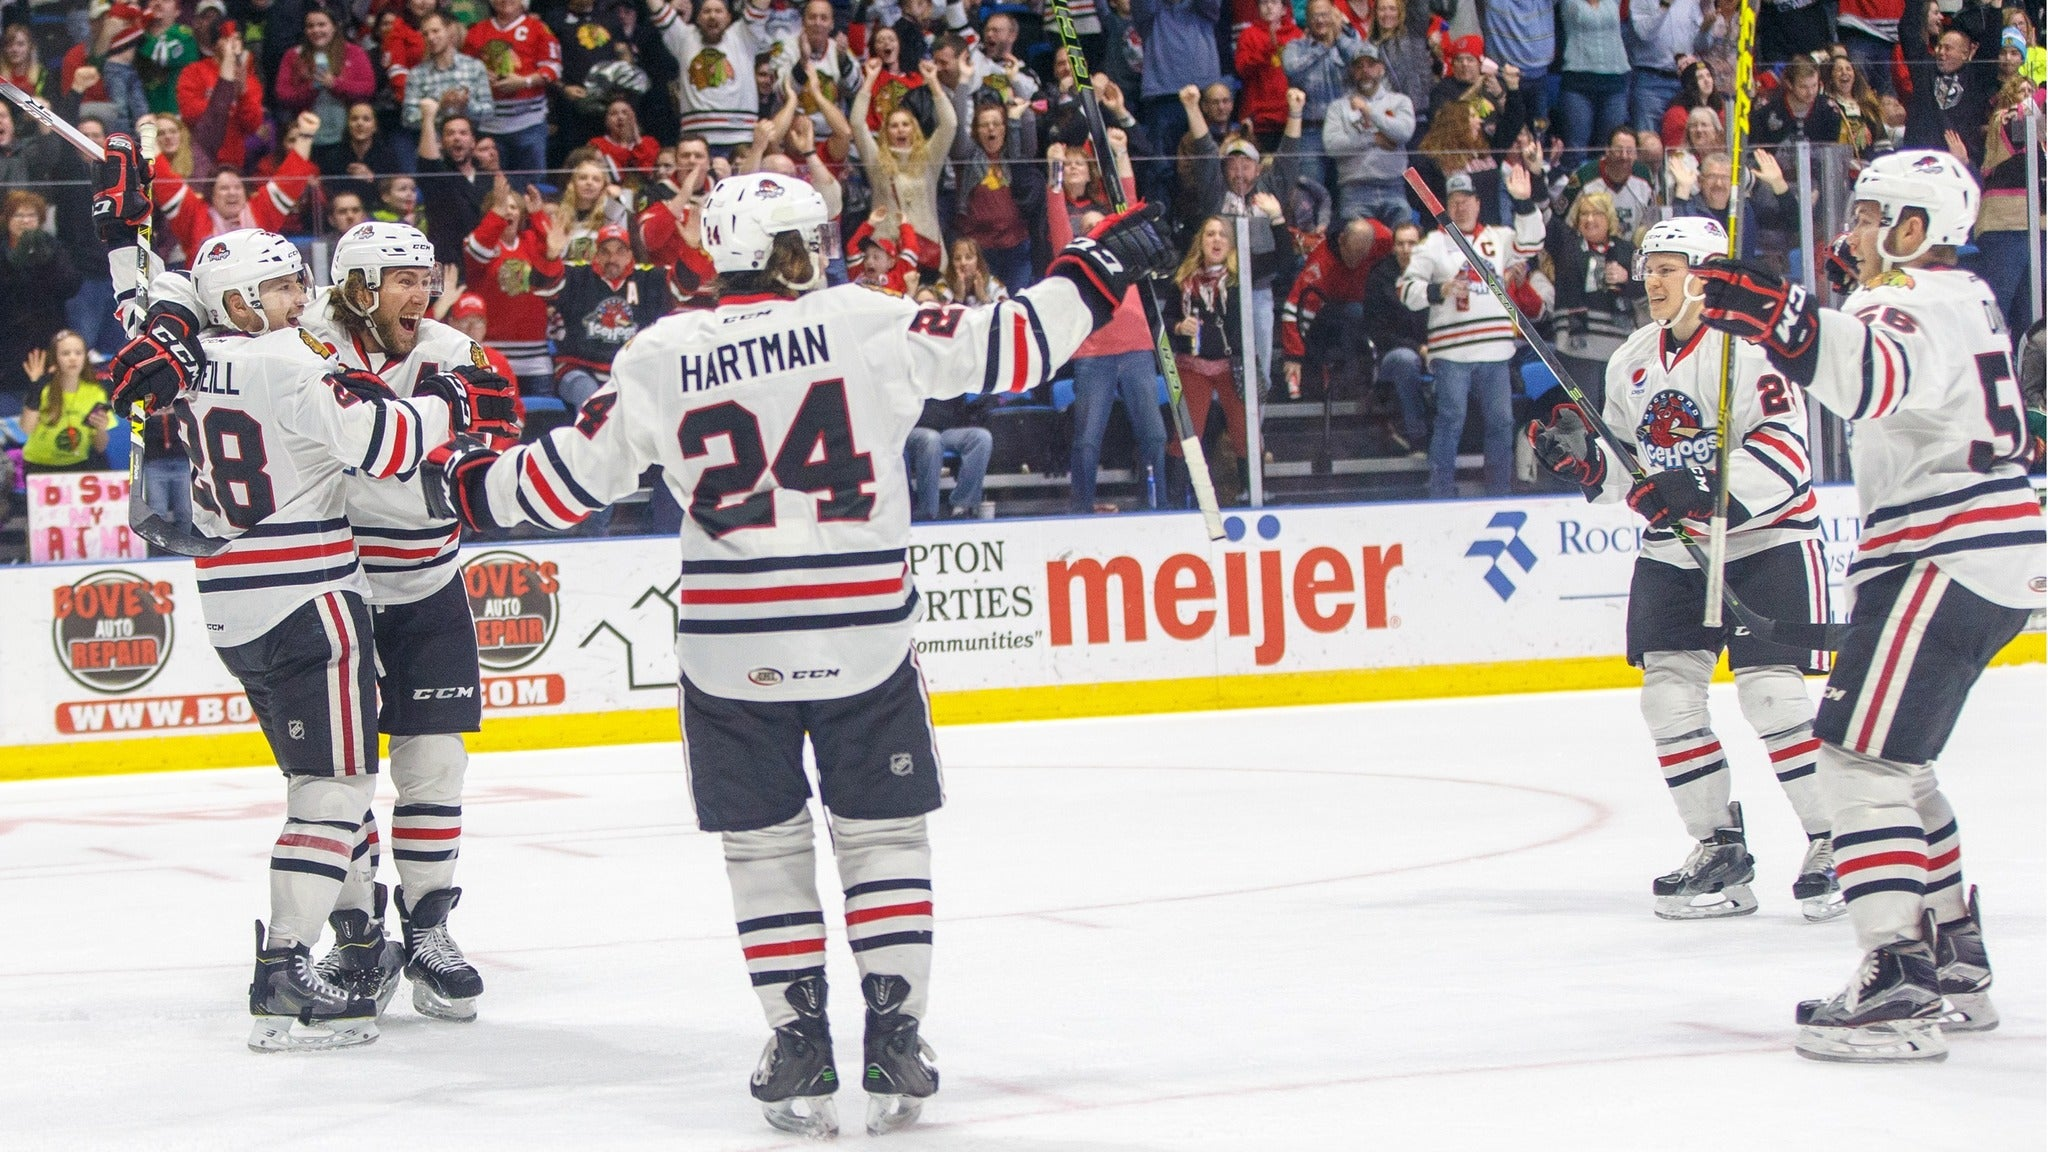 Rockford IceHogs vs Grand Rapids Griffins - Rockford, IL 61101